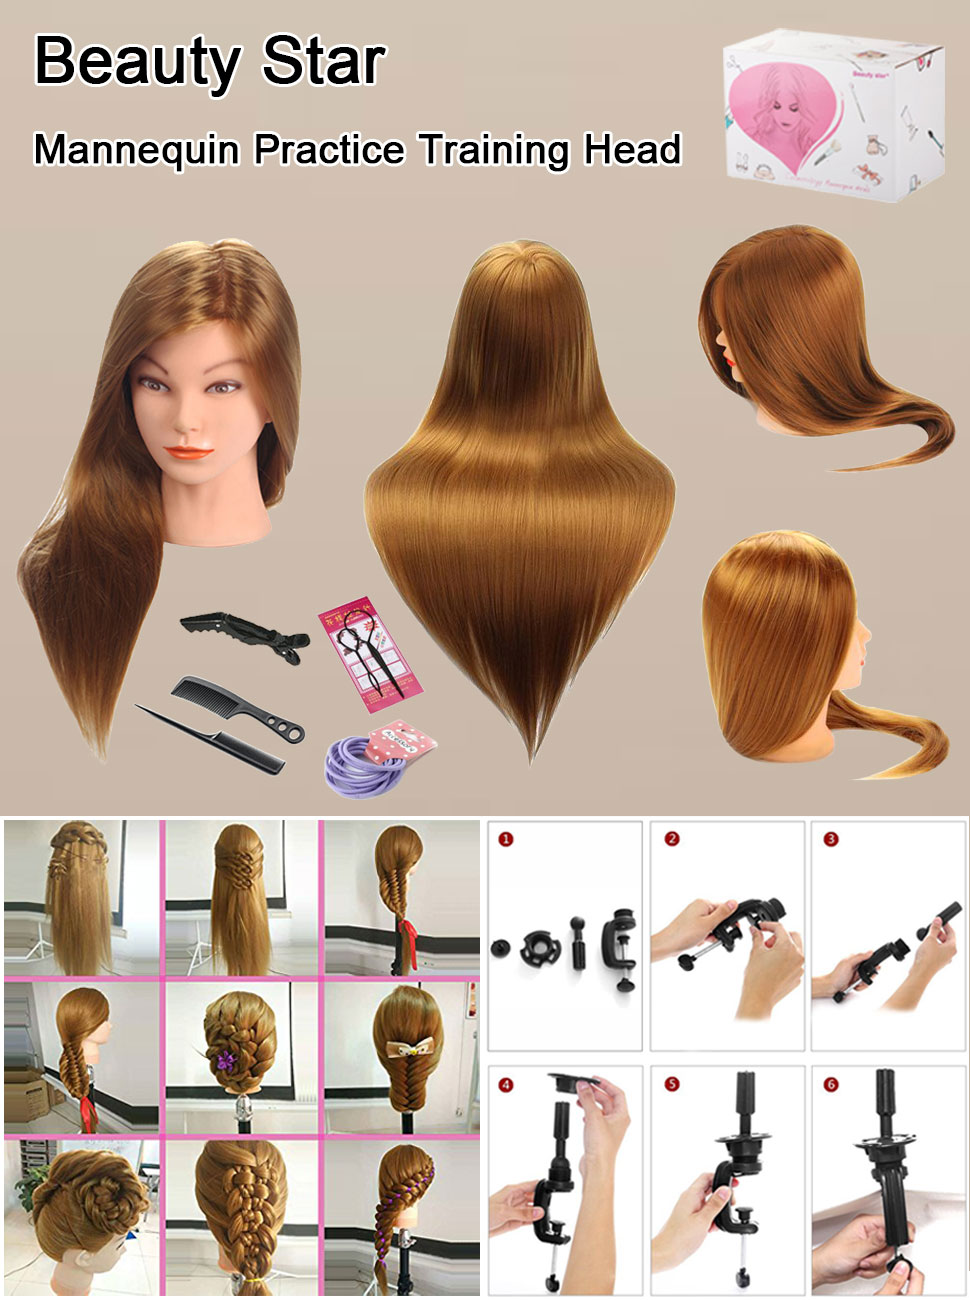 Wig Stands Hearty Synthetic Mannequin Head Female Hair Head Doll 22 Inches Mannequin Doll Head Hairdressing Training Heads Styling With Fiber Tools & Accessories